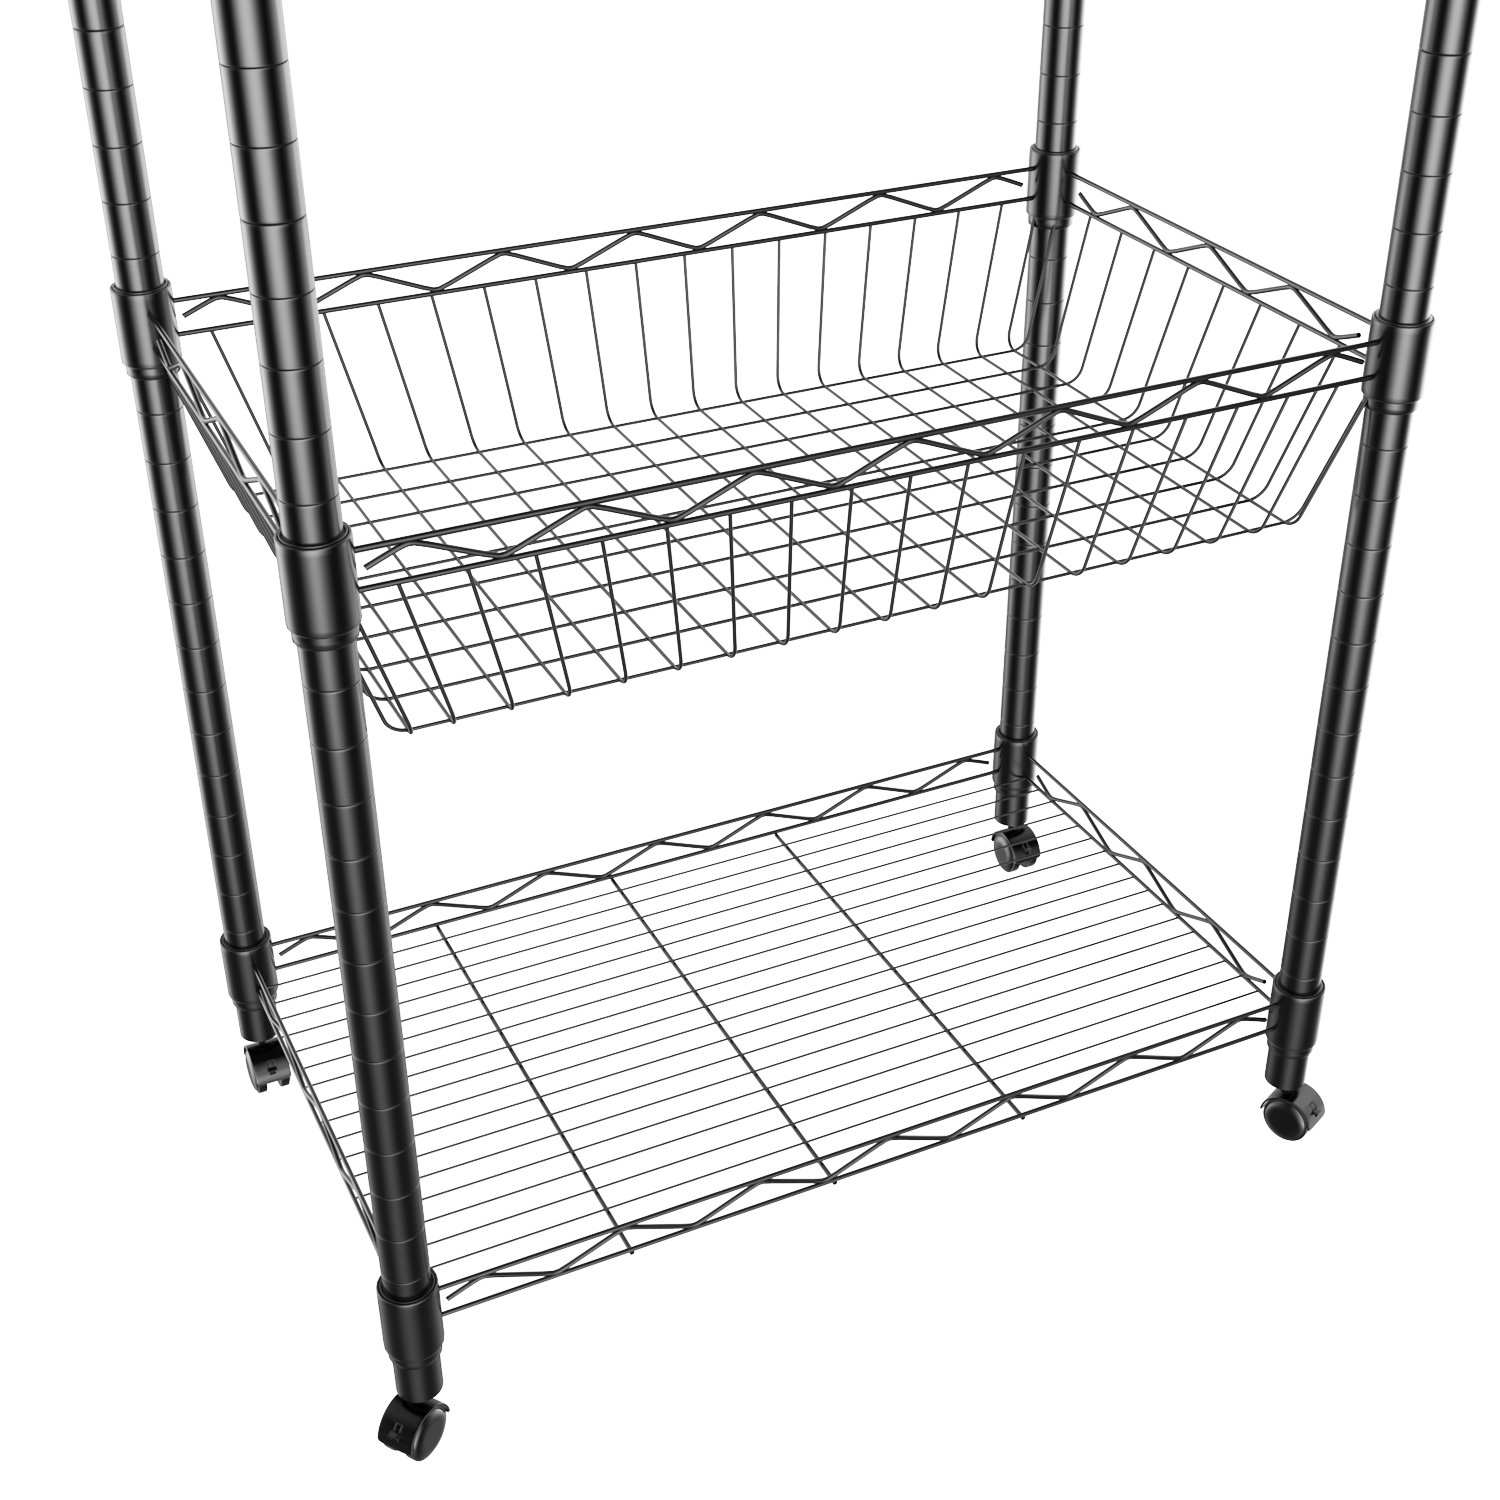 5 Tier Steel Wire Shelving with Wheels, Shelving Storage Organizer Rack for Kitchen Bathroom Balcony Living Room 71inch - Black [US STOCK] by ferty (Image #4)